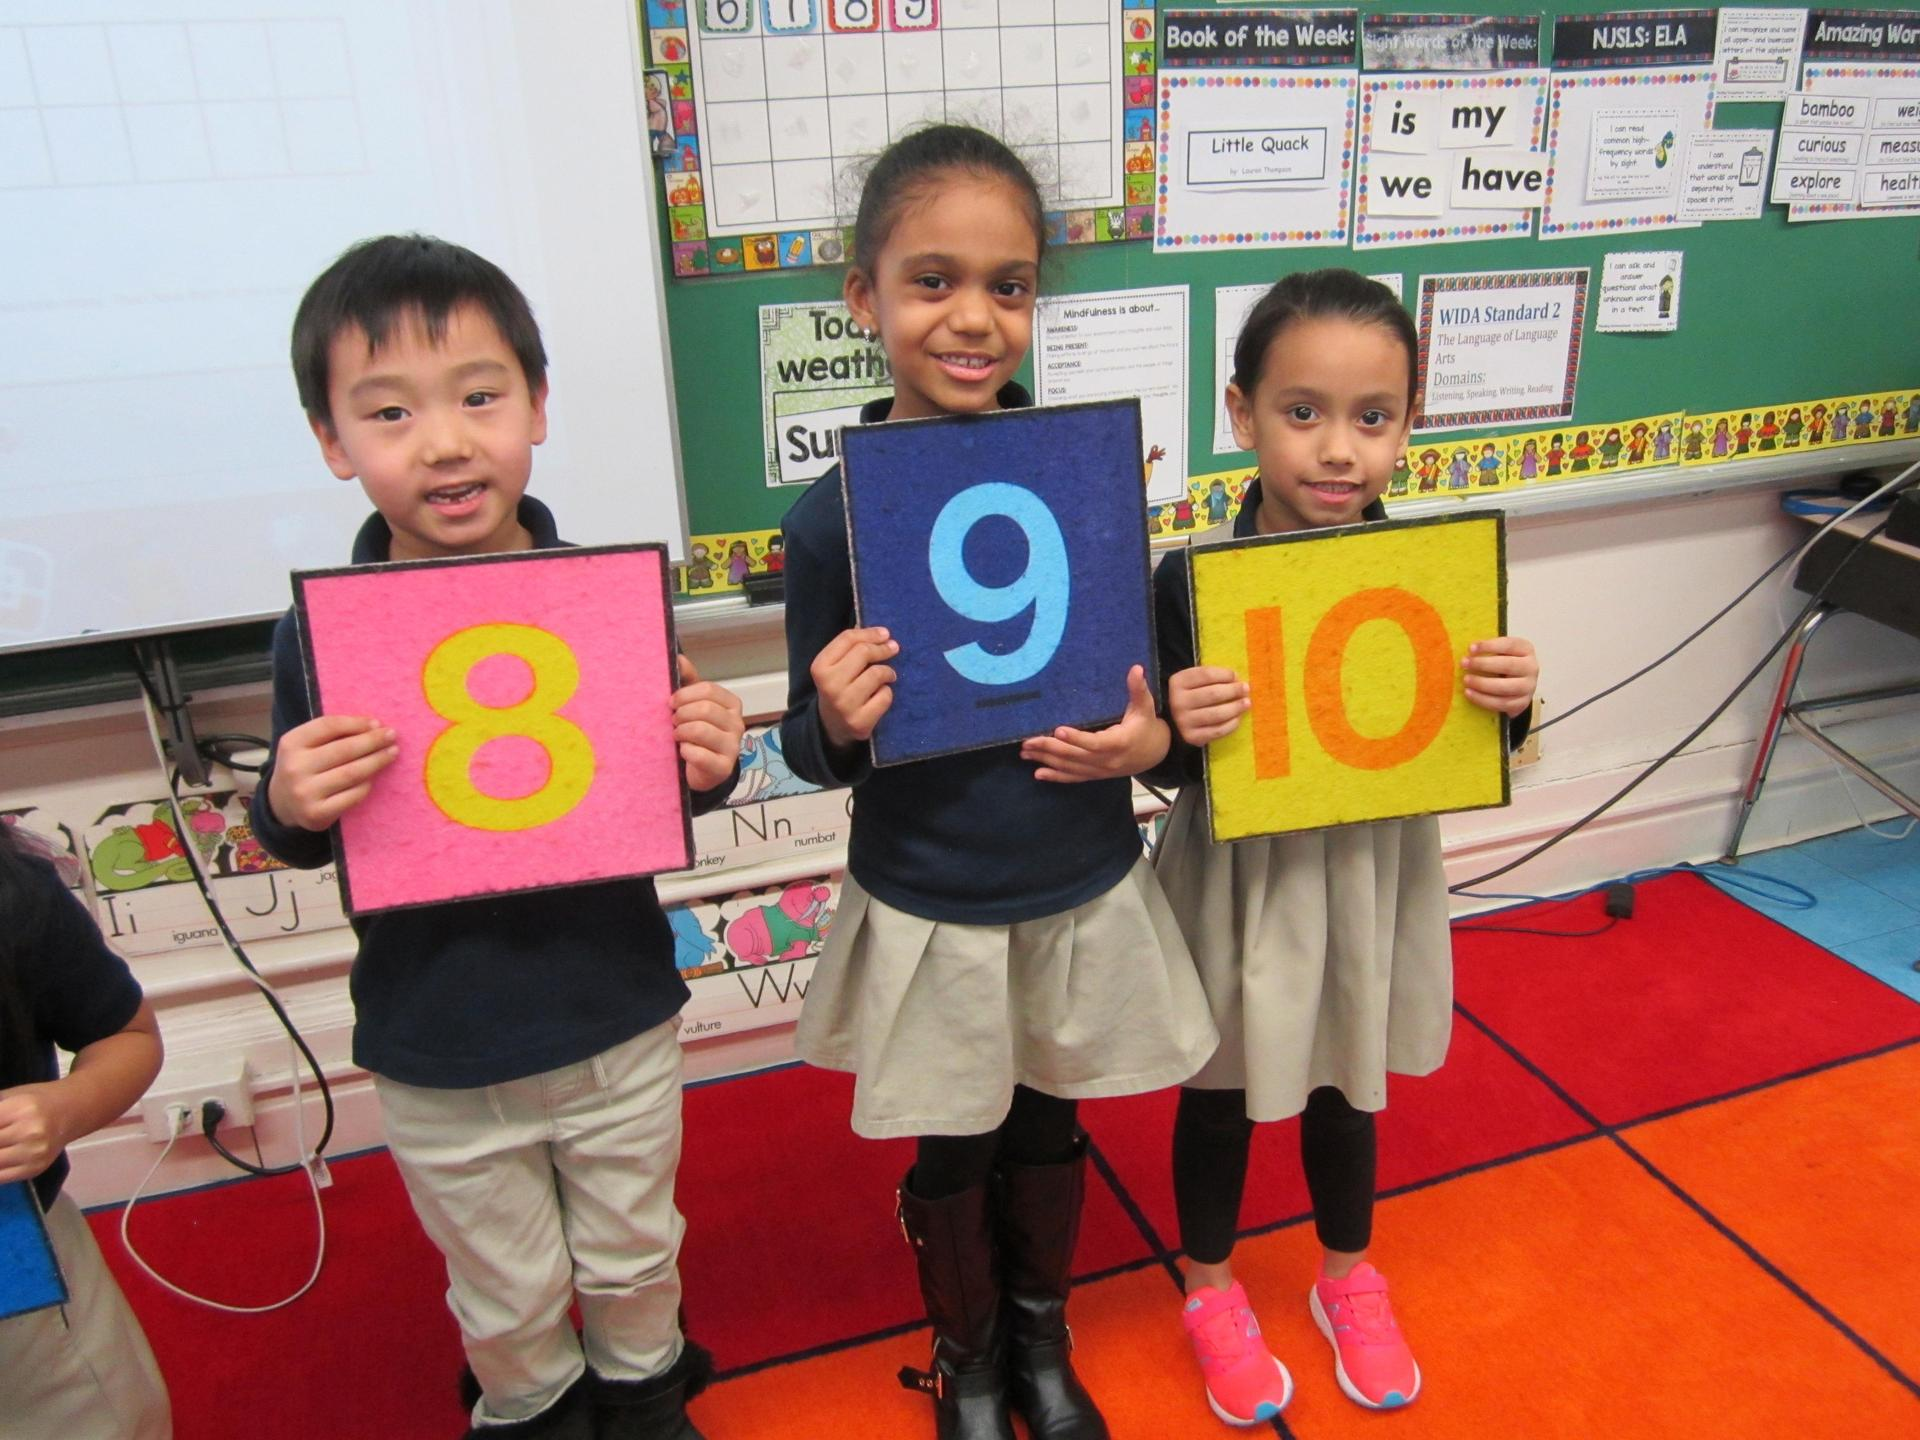 kids holding signs for numbers 6-9